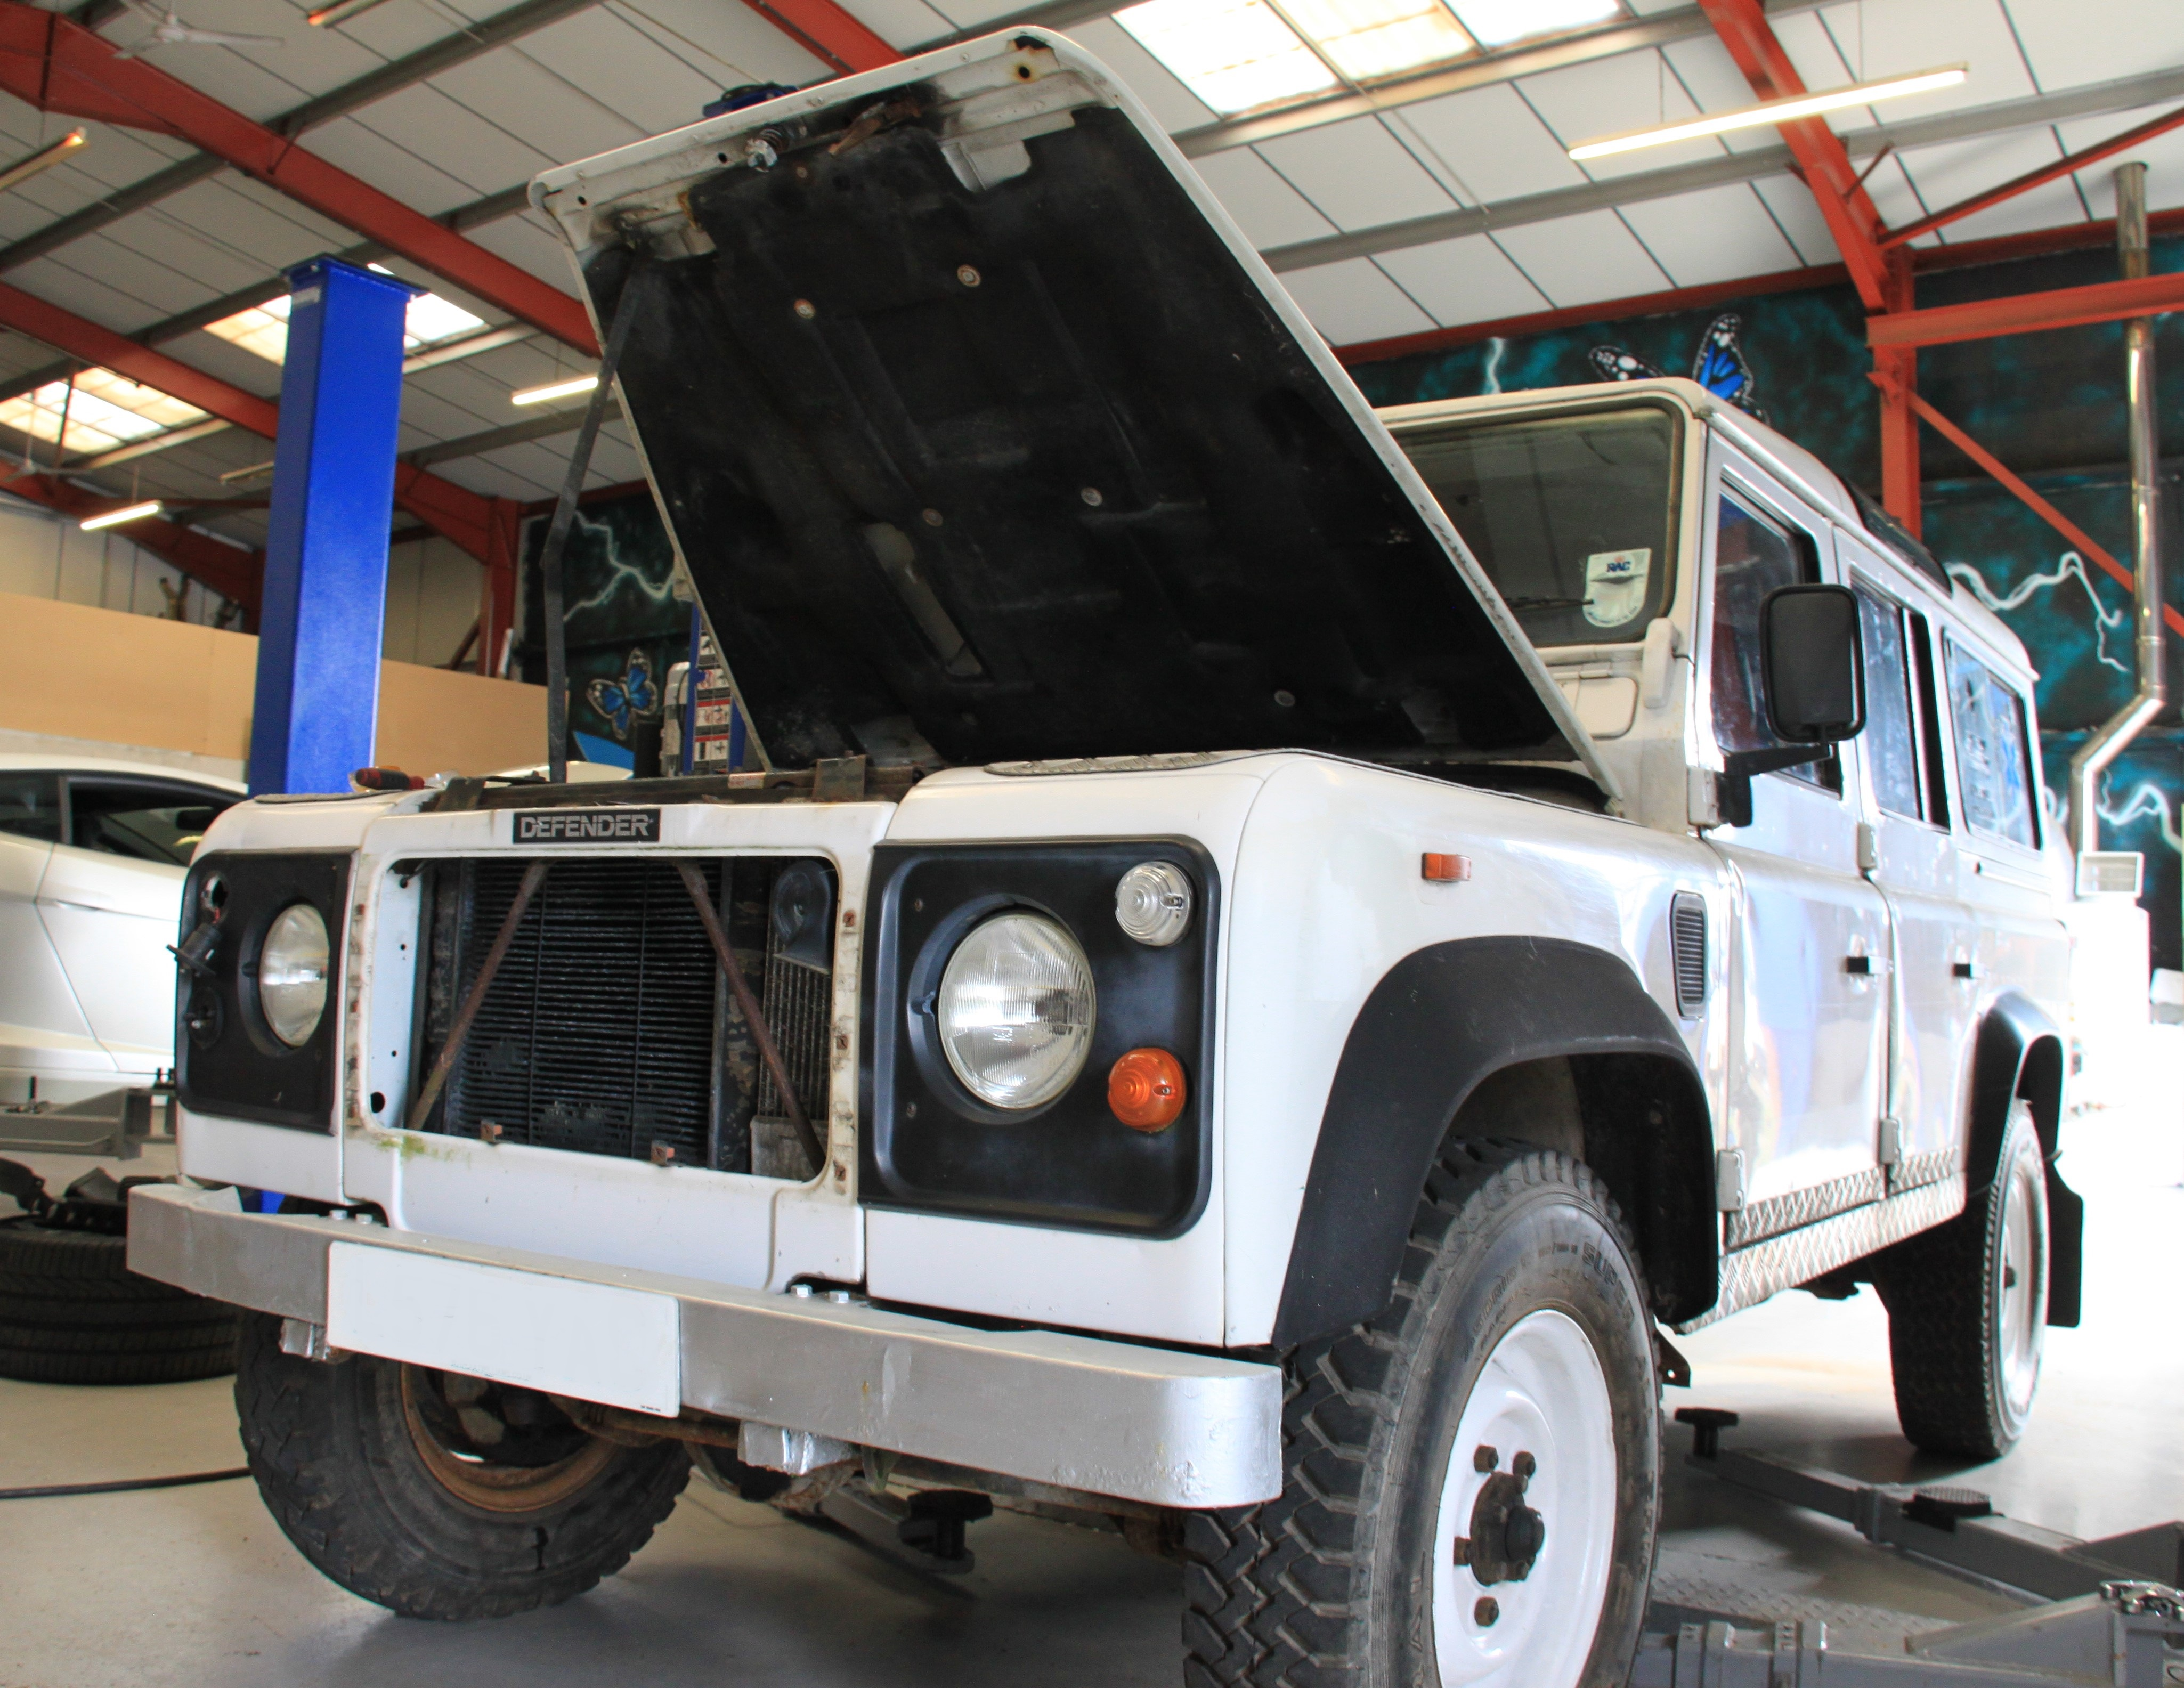 Land Rover defender 110 stripping back the years going through restoration performance upgrades defender tuning styling